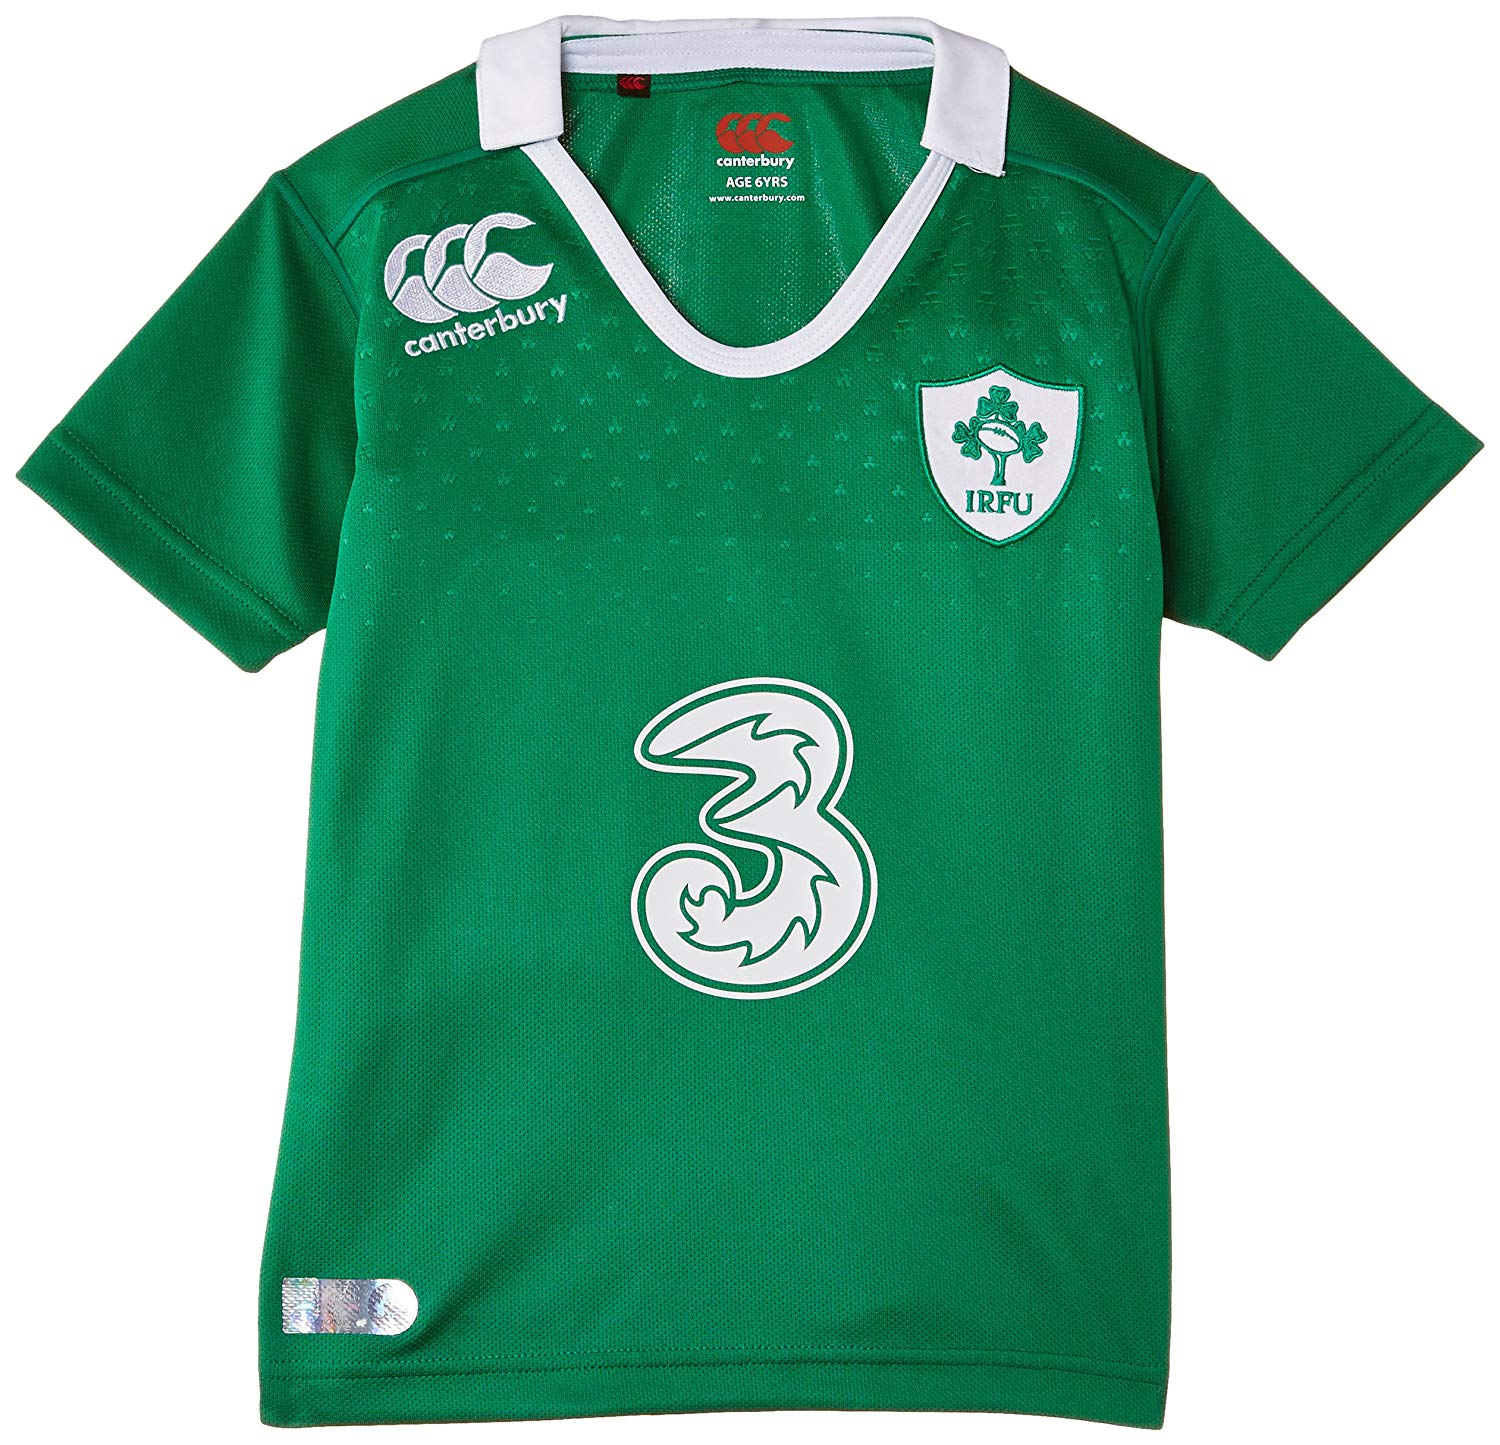 34a212945 Get Quotations · Canterbury 2014-2015 Ireland Home Pro Rugby Shirt (Kids)